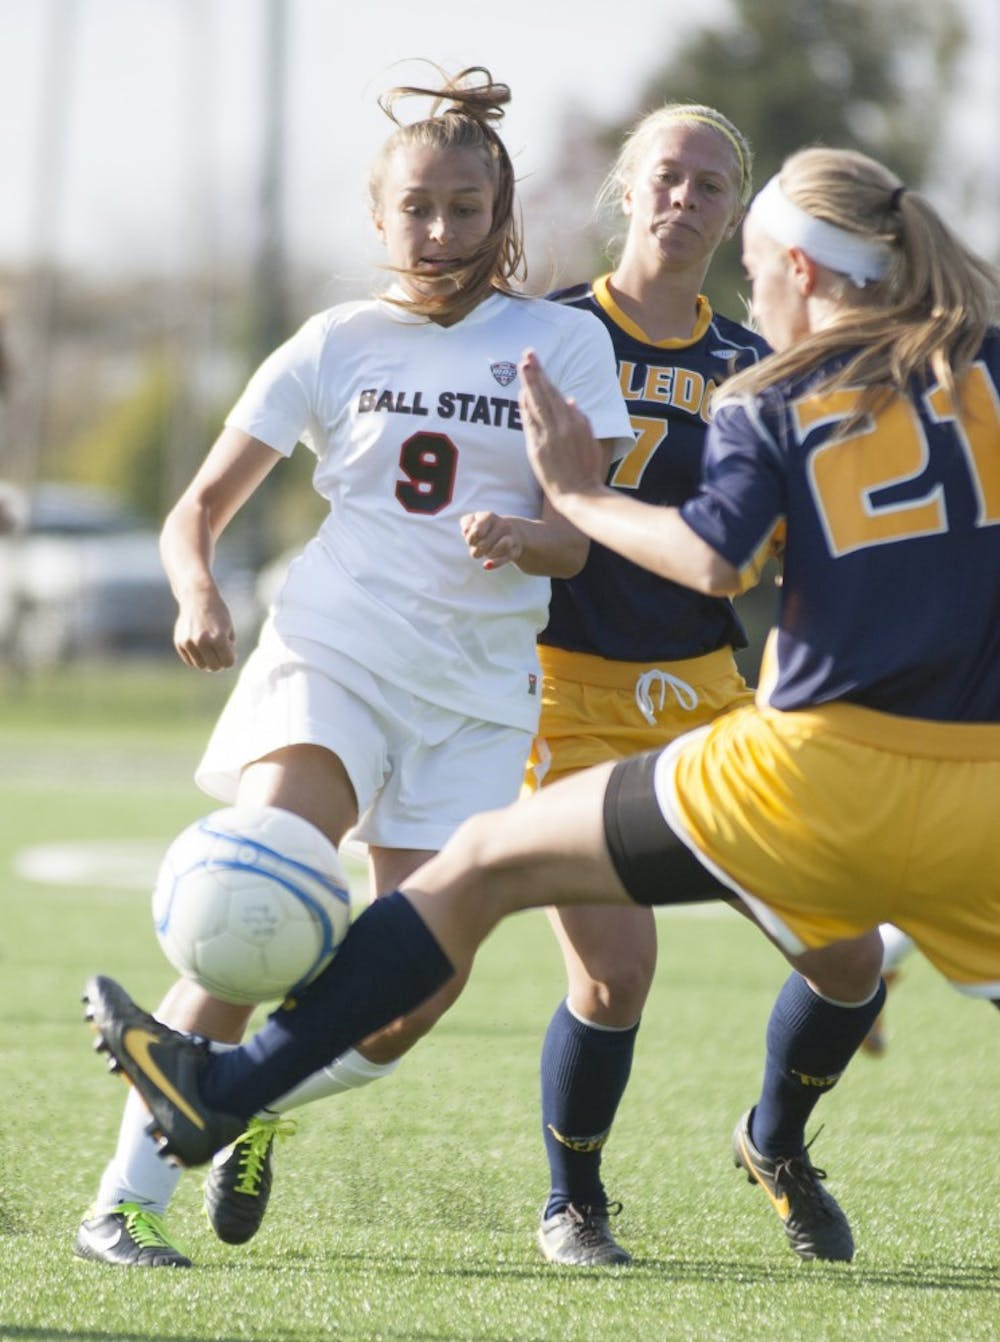 Junior forward Nicole Pembleton attempts to move the ball down past a Toledo defender in the match on Oct. 18 at the Briner Sports Complex. The team advanced to the Mid-American Conference semifinal match after winning against Central Michigan. DN FILE PHOTO MATT MCKINNEY